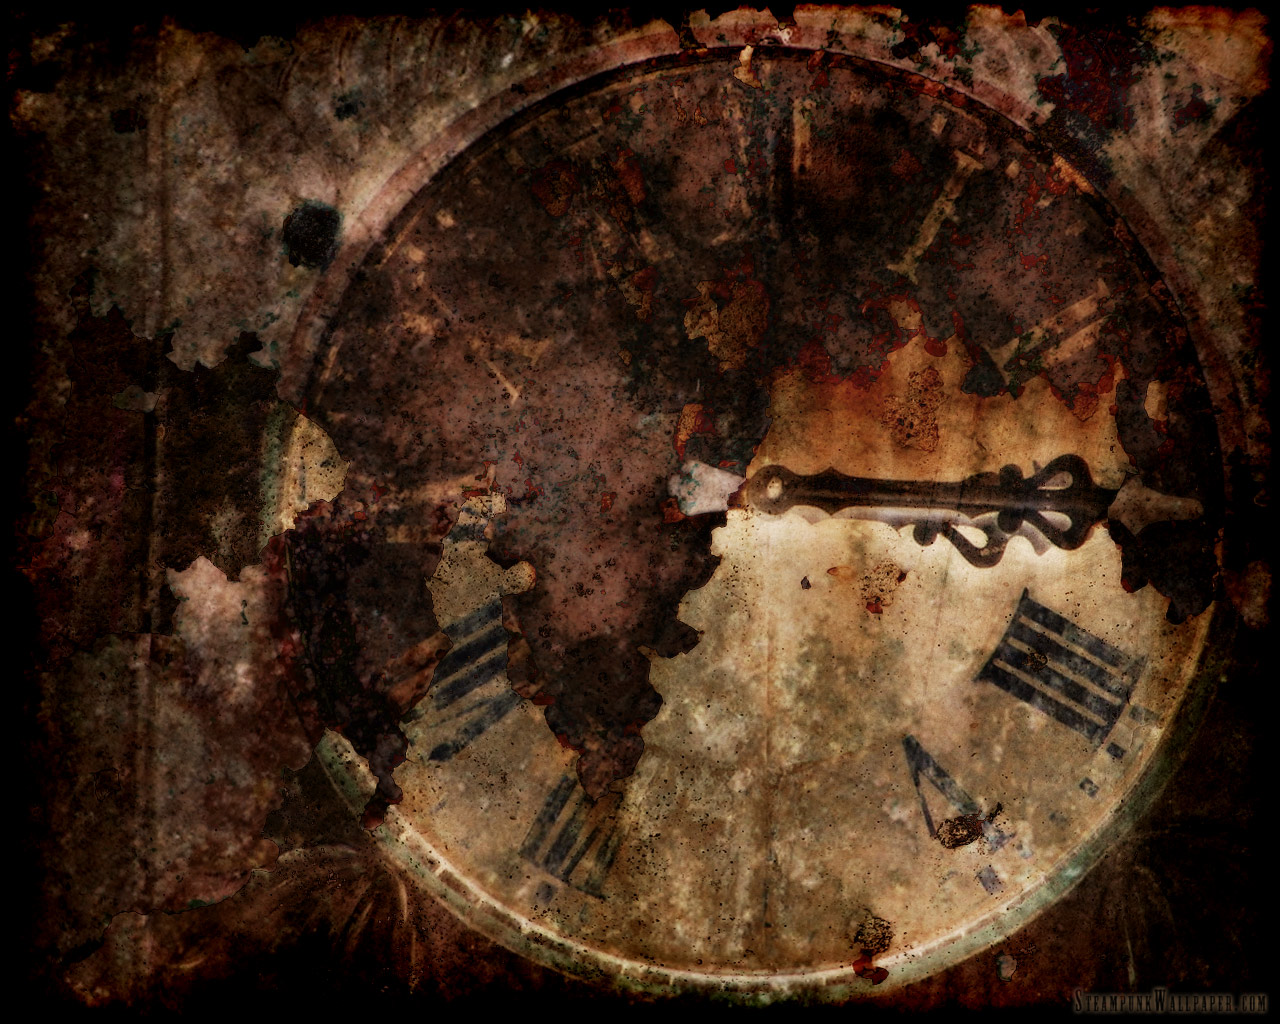 Steampunk Grunge Backgrounds Free